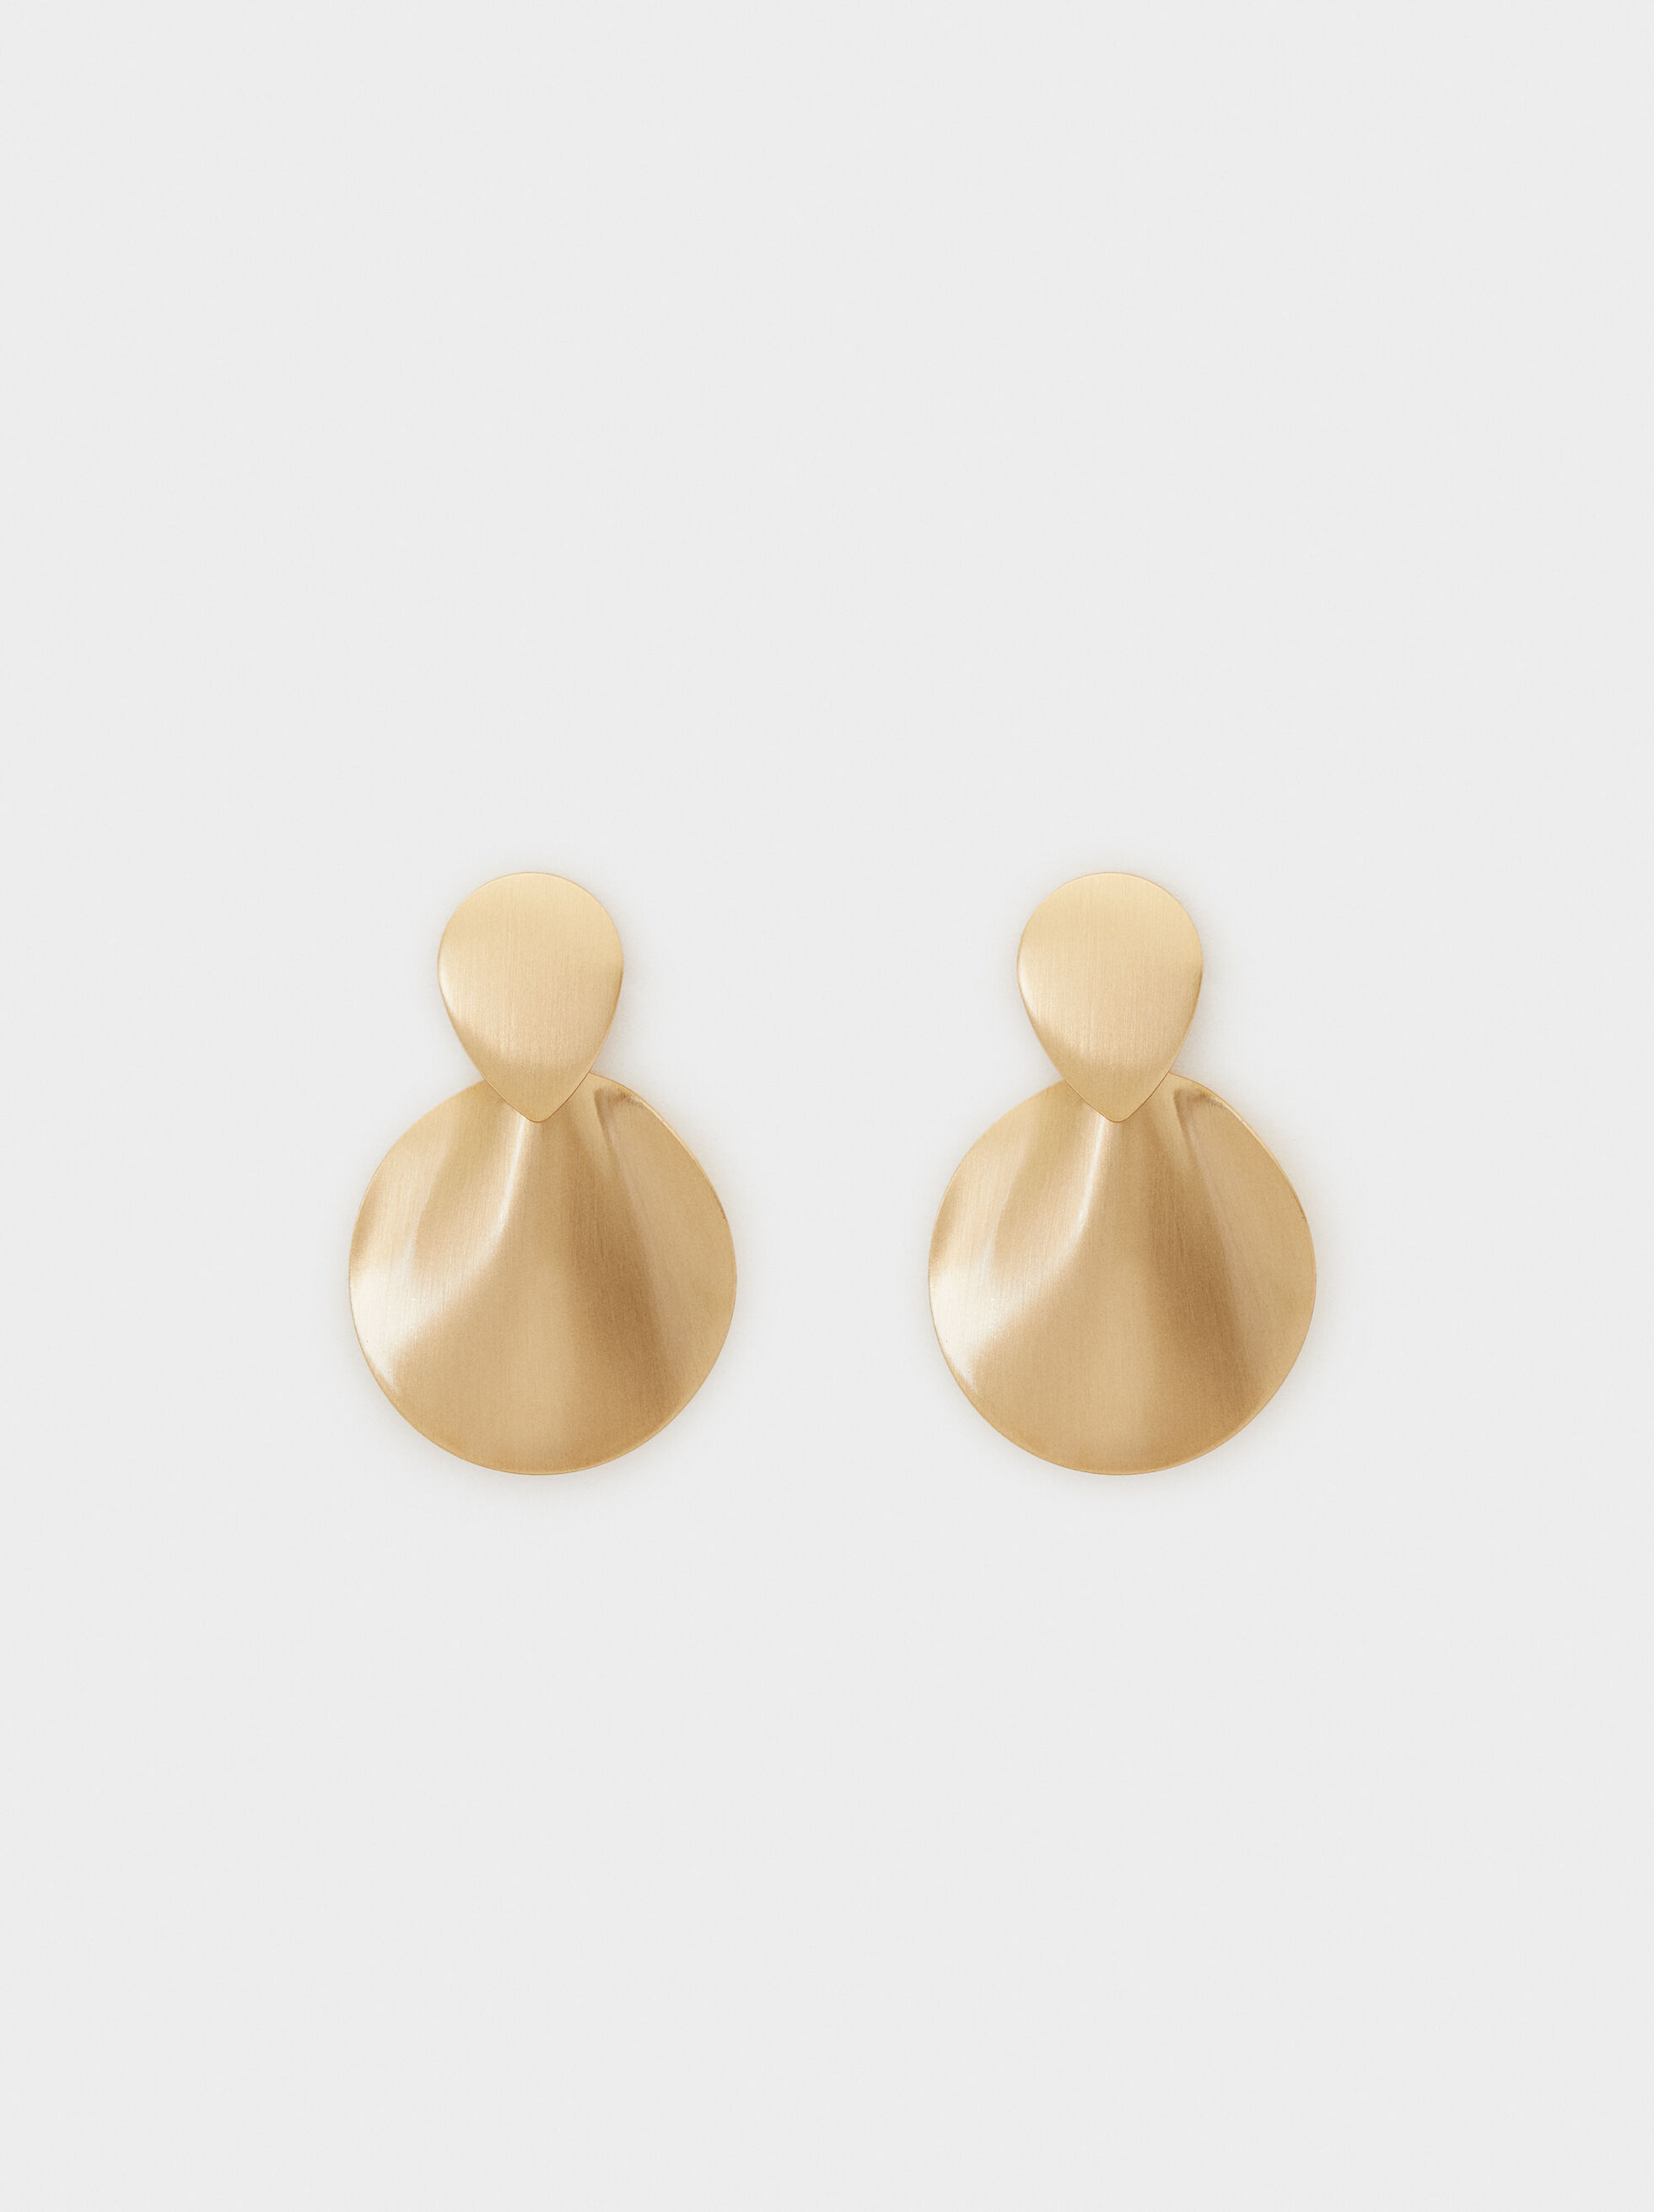 Medium Gold-Finish Earrings, , hi-res